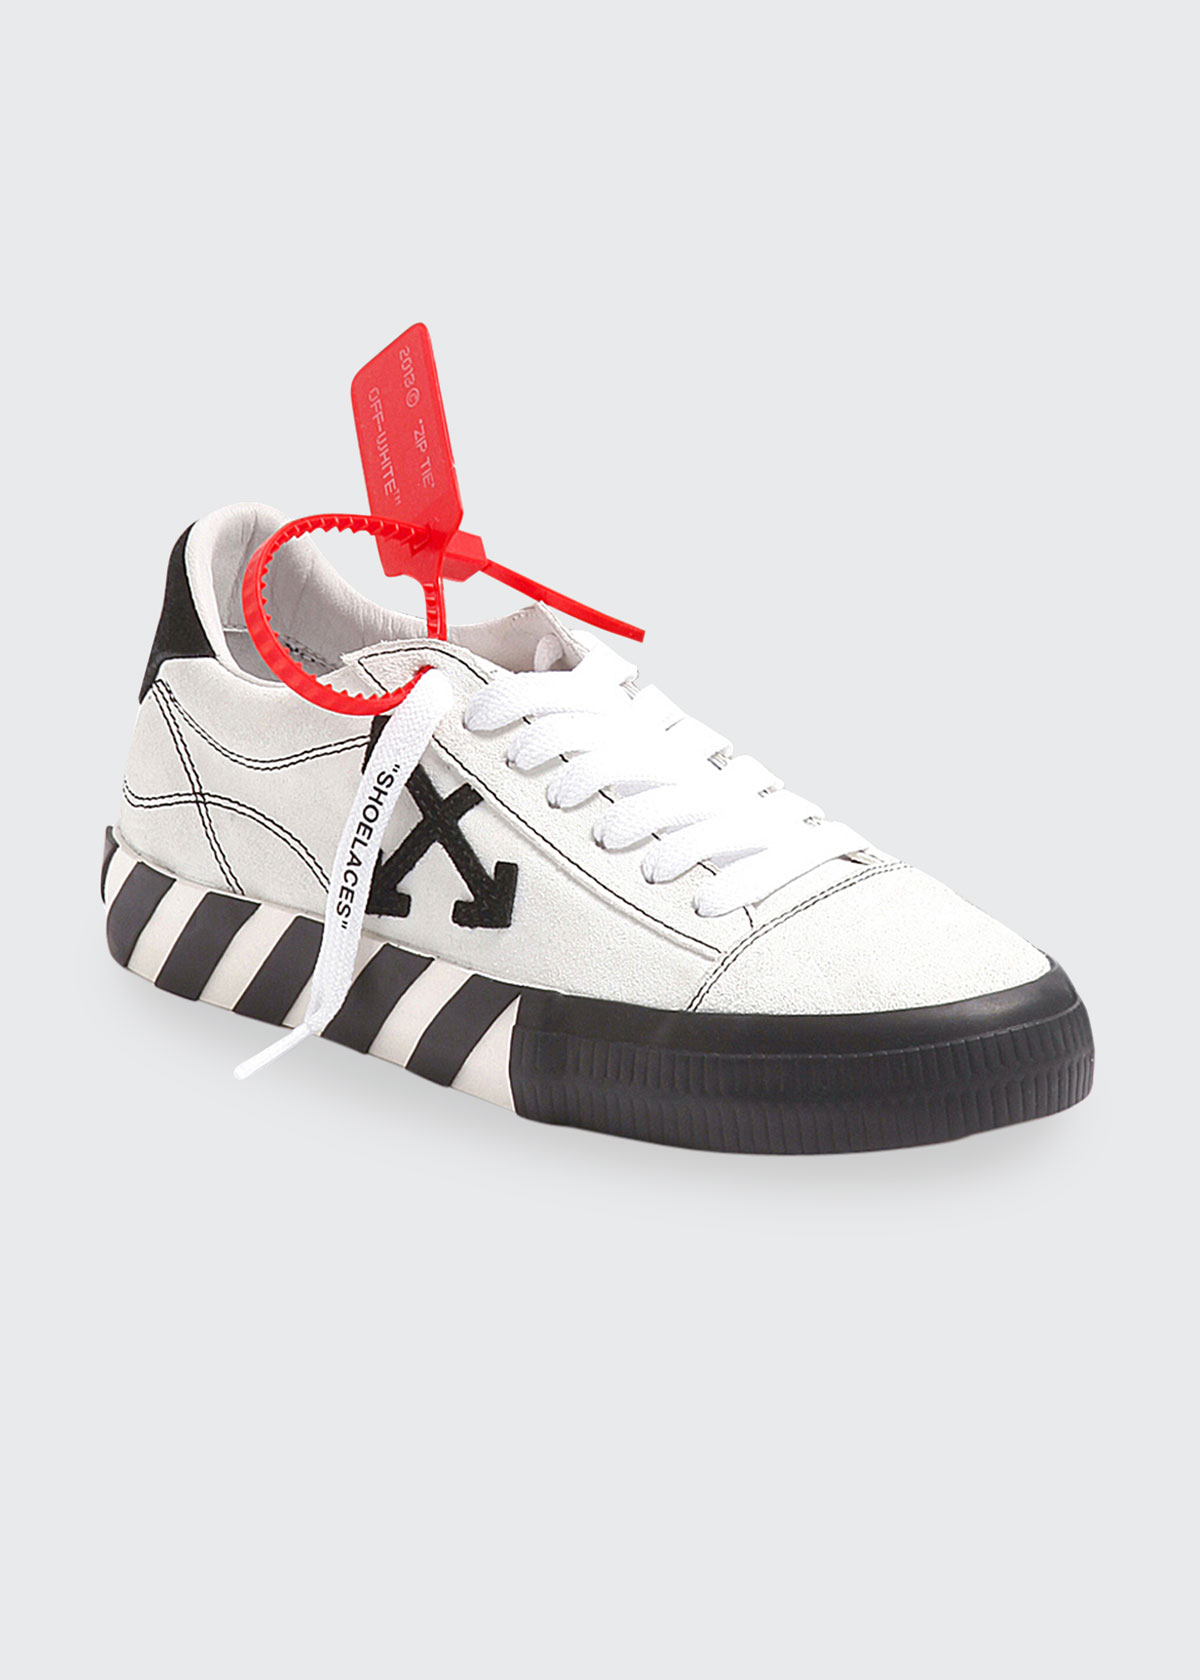 Off-White VULCANIZED NEW ARROW LEATHER STRIPE SNEAKERS